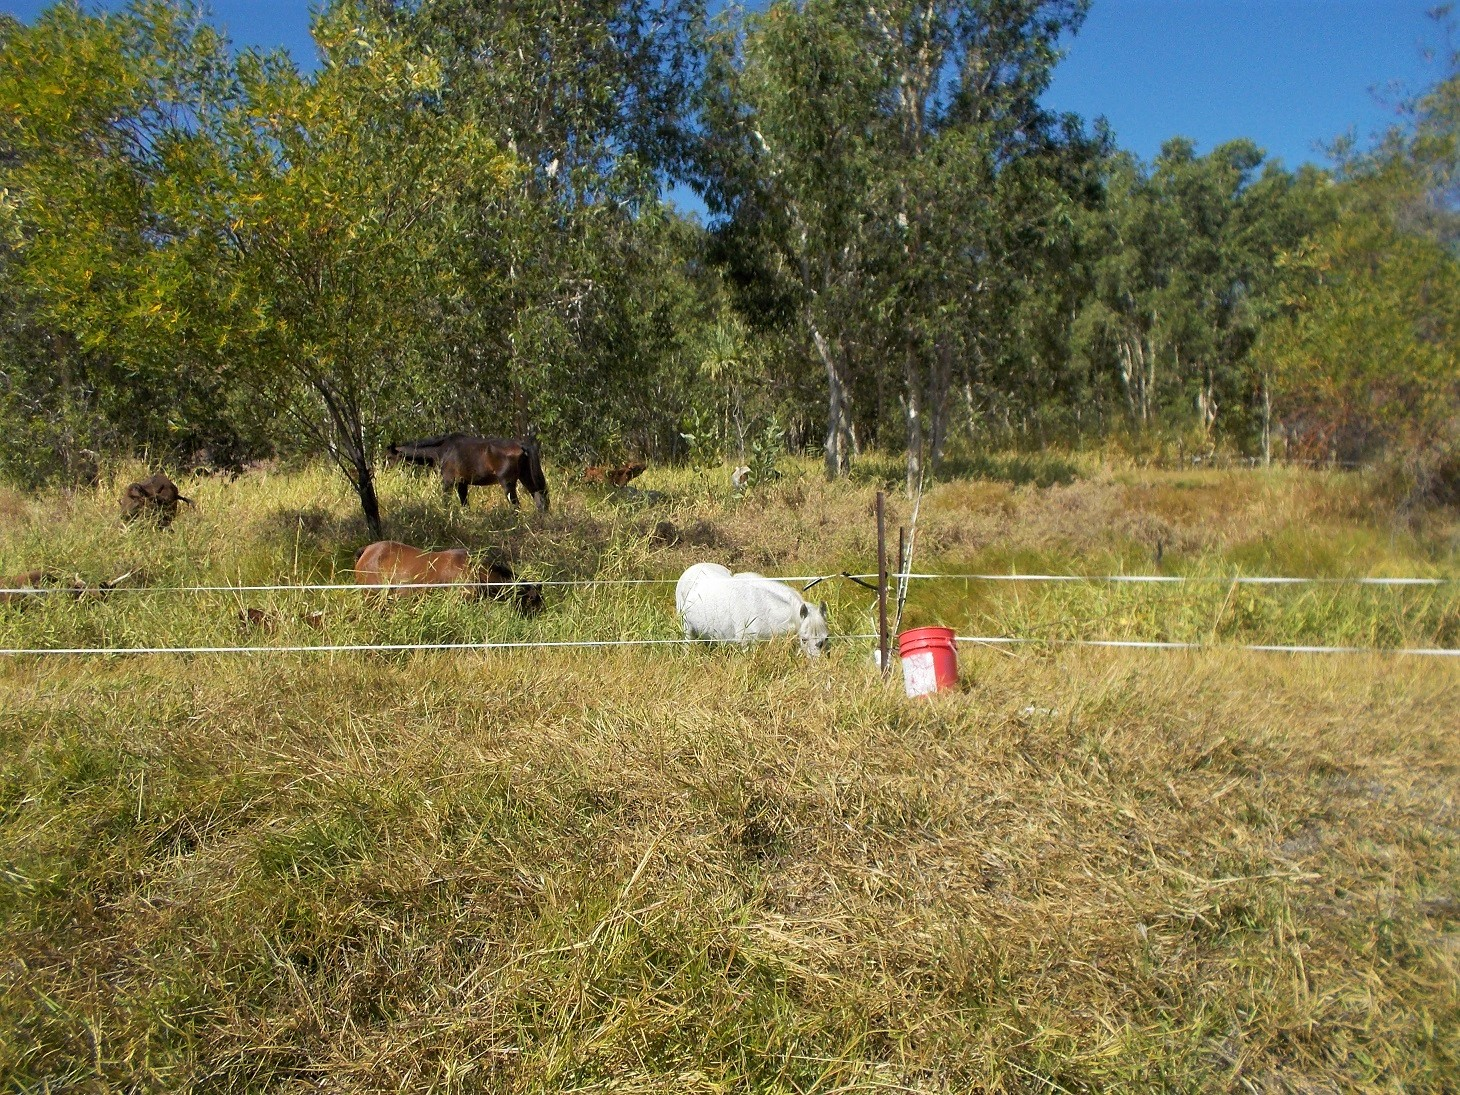 In areas where we manage to retain perennial groundcover, this water sub-irrigates pasture